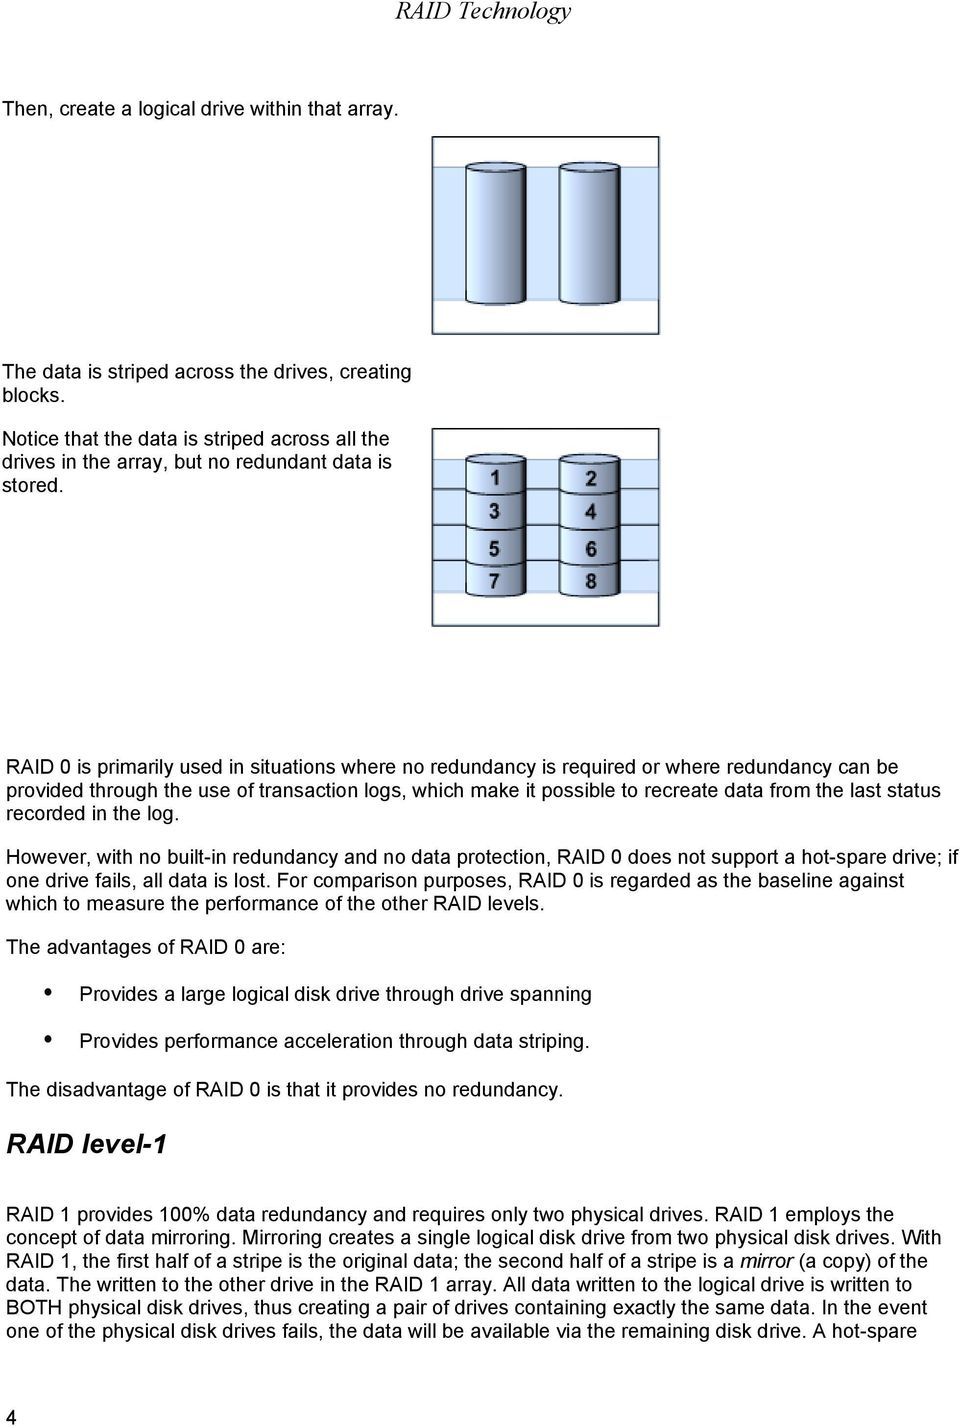 RAID 0 is primarily used in situations where no redundancy is required or where redundancy can be provided through the use of transaction logs, which make it possible to recreate data from the last